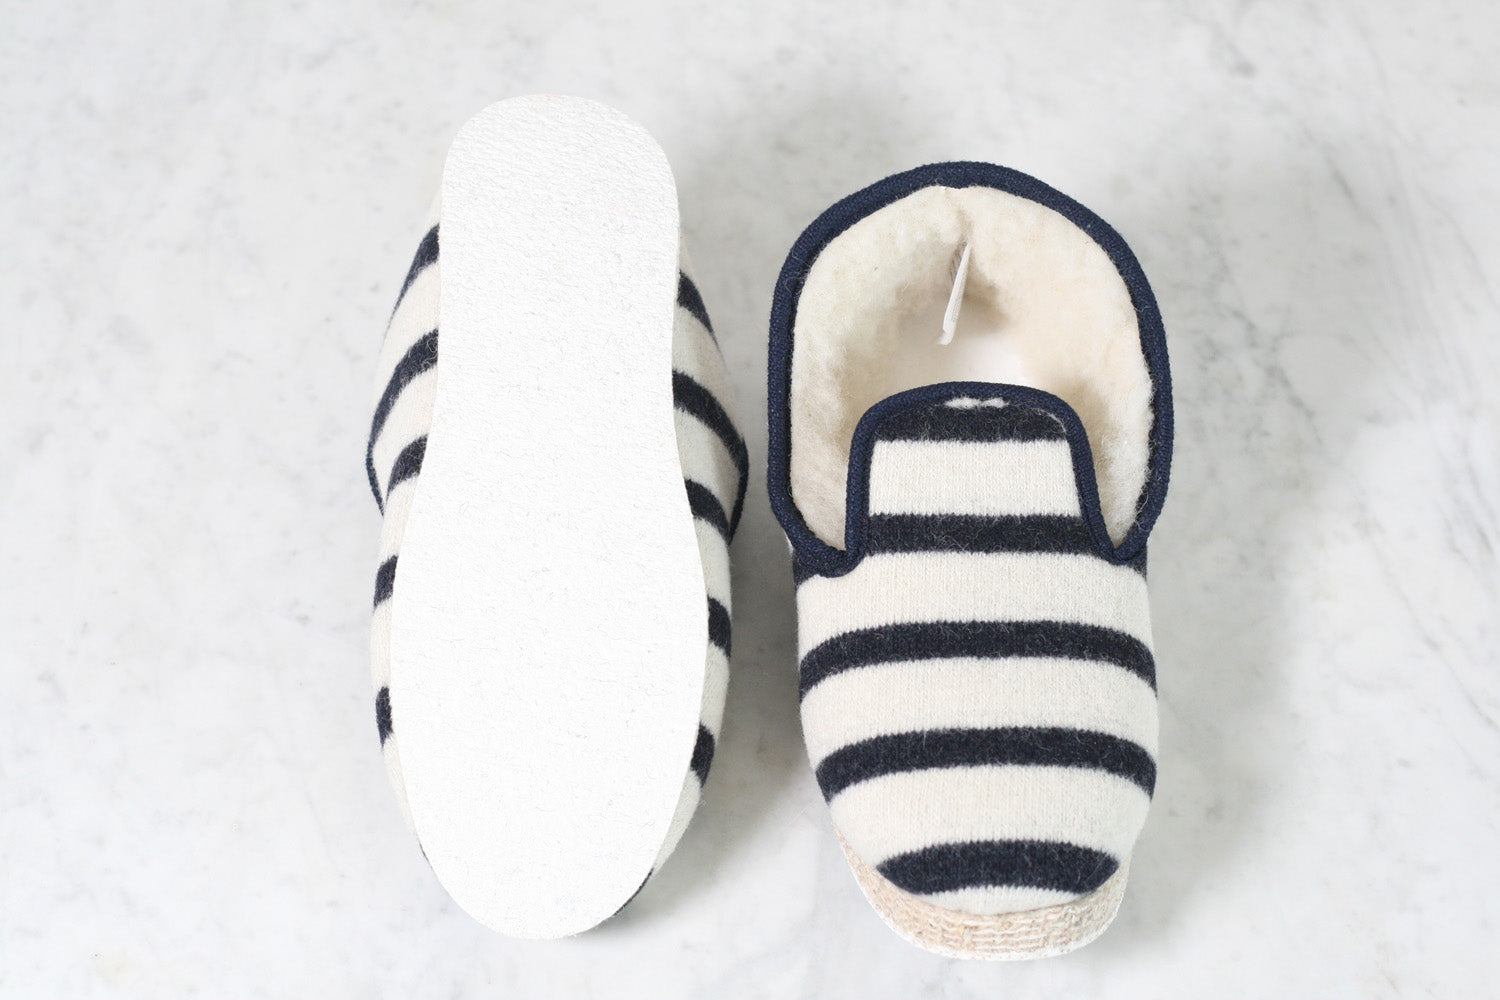 Armor-Lux Wool Slippers